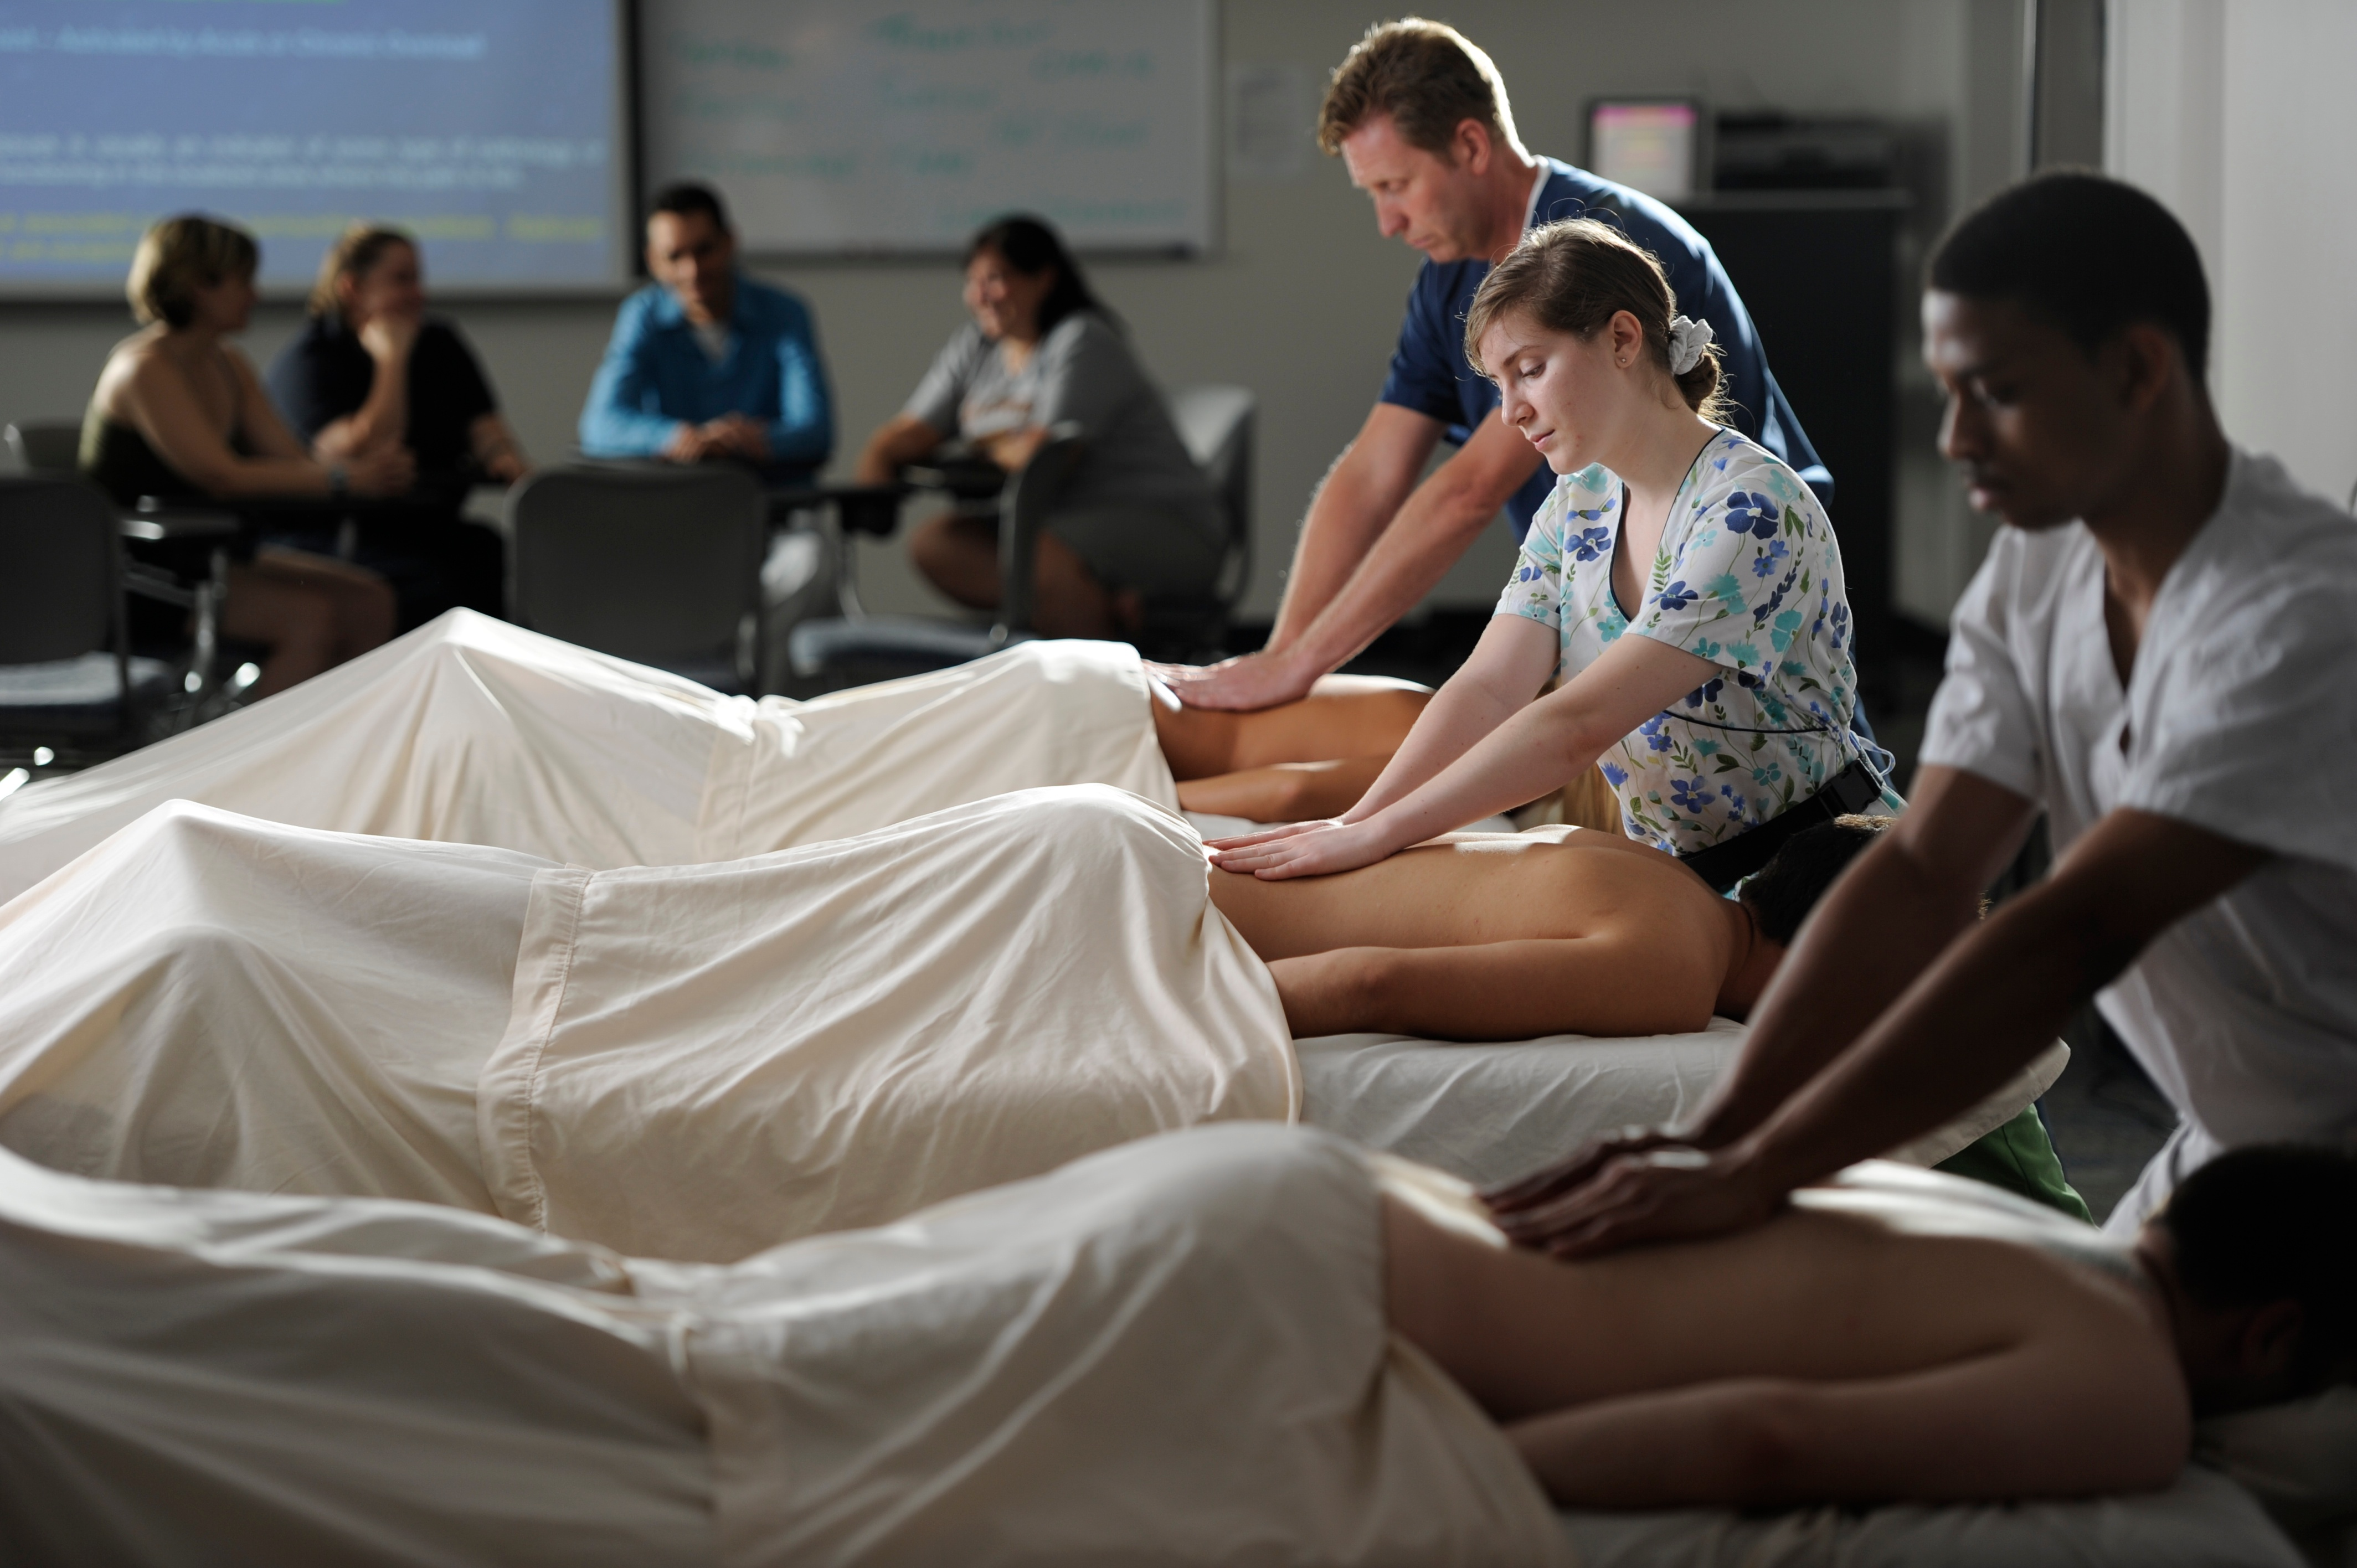 4 Resources You Can Take Advantage of as a Massage Therapy Student at NUHS